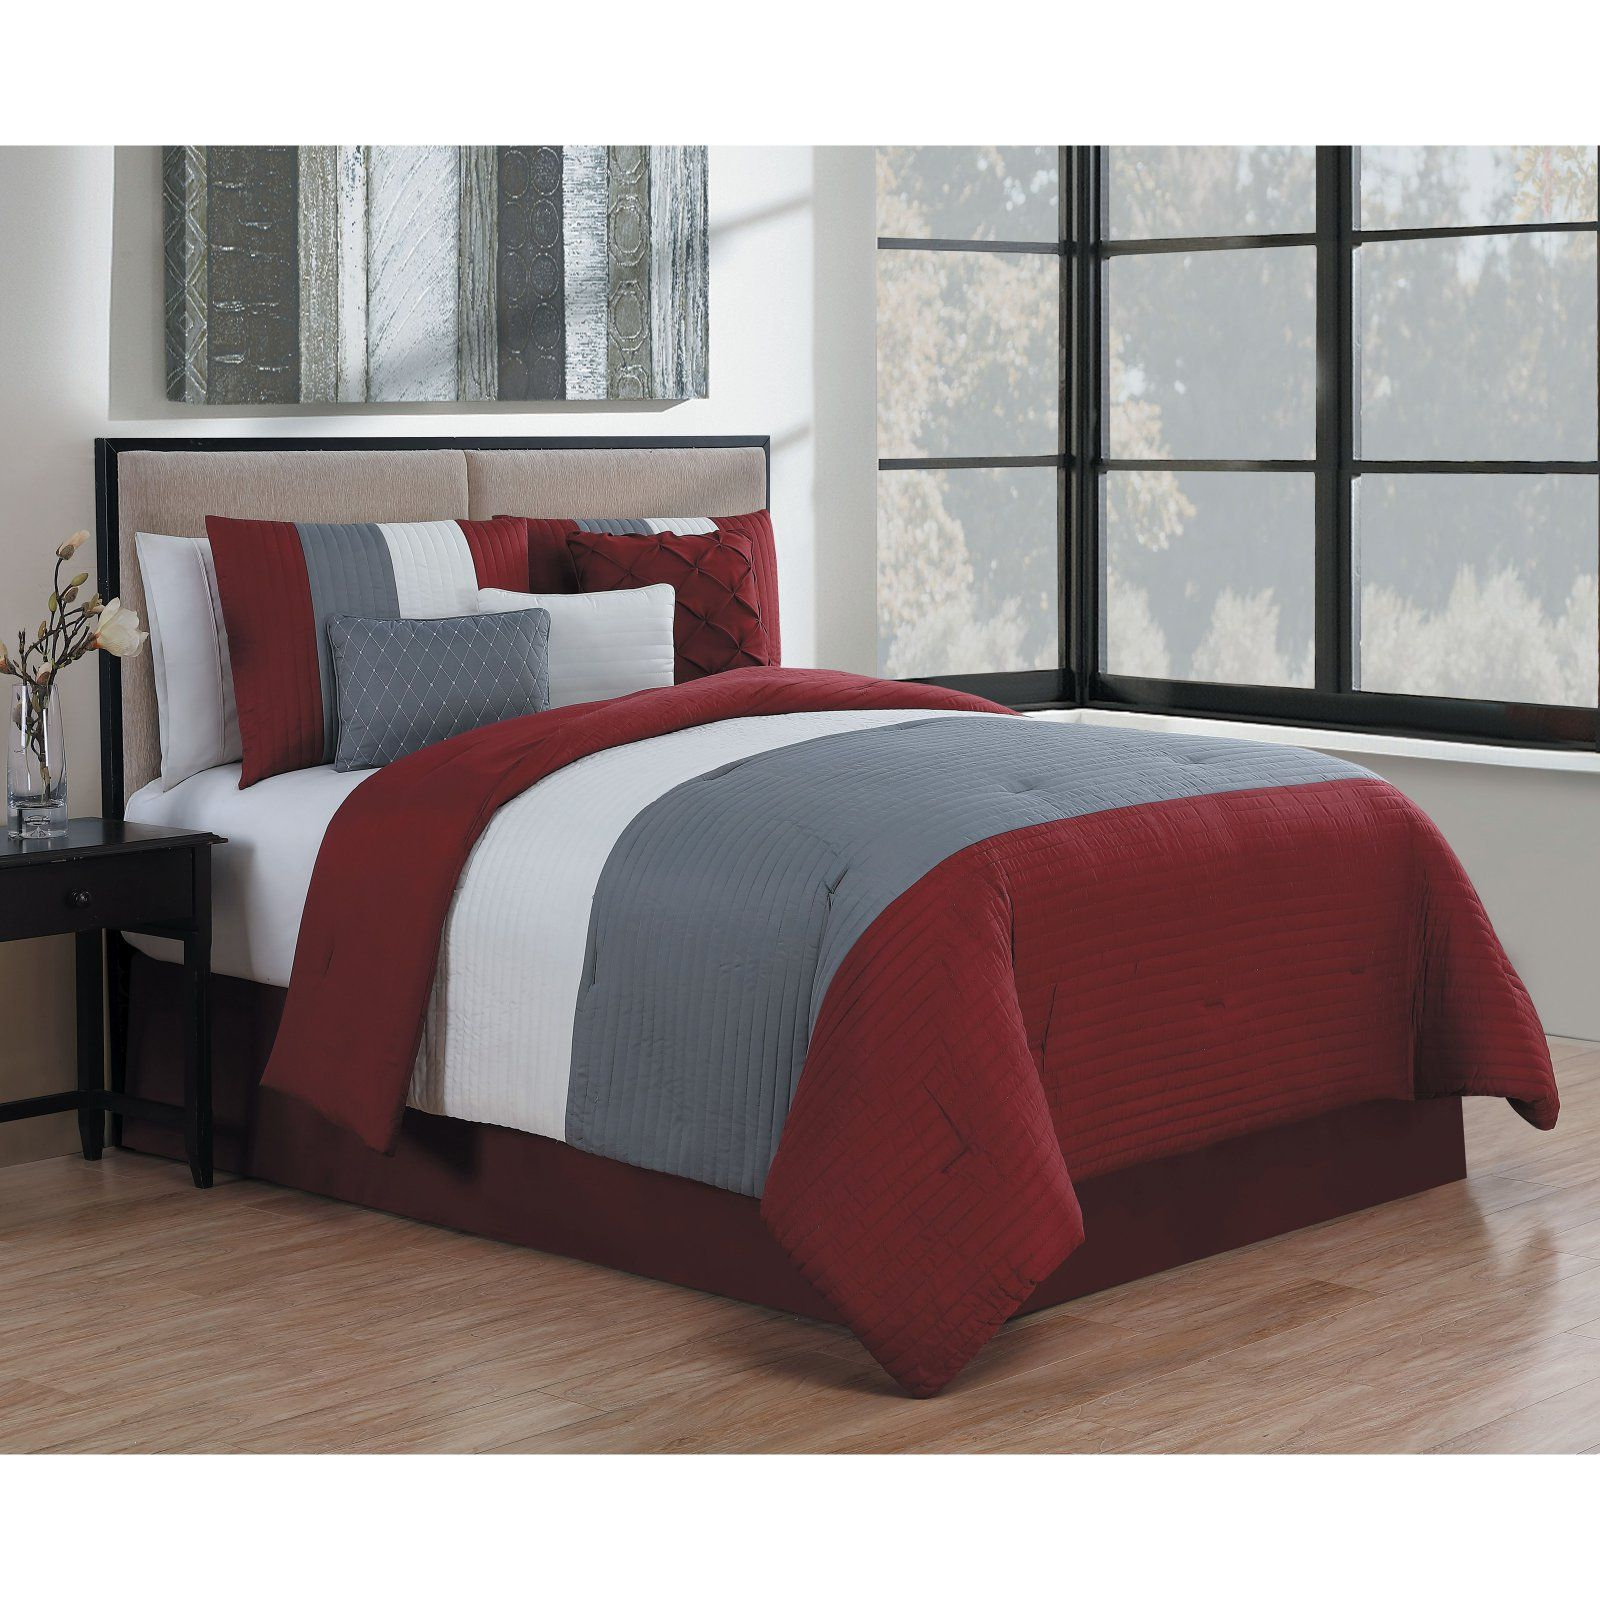 Manchester 7 Piece Comforter Set by Avondale Manor Brown